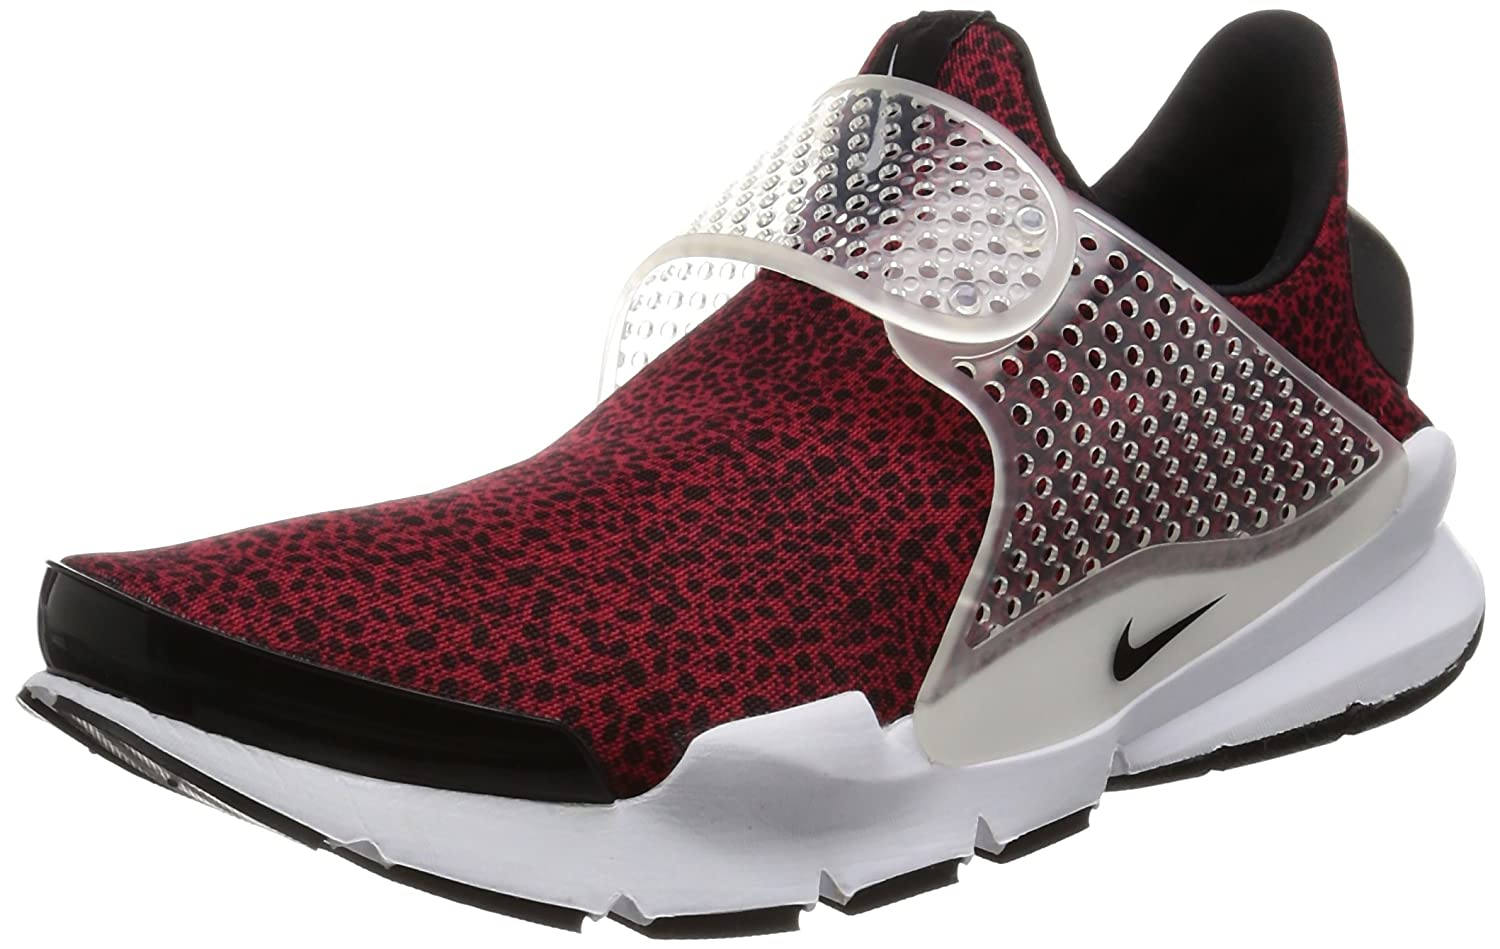 on sale e90af 20fd6 Nike Men Sock Dart Qs Safari Pack red Gym red Black-White Size 12. 0 US   Buy Online at Low Prices in India - Amazon.in